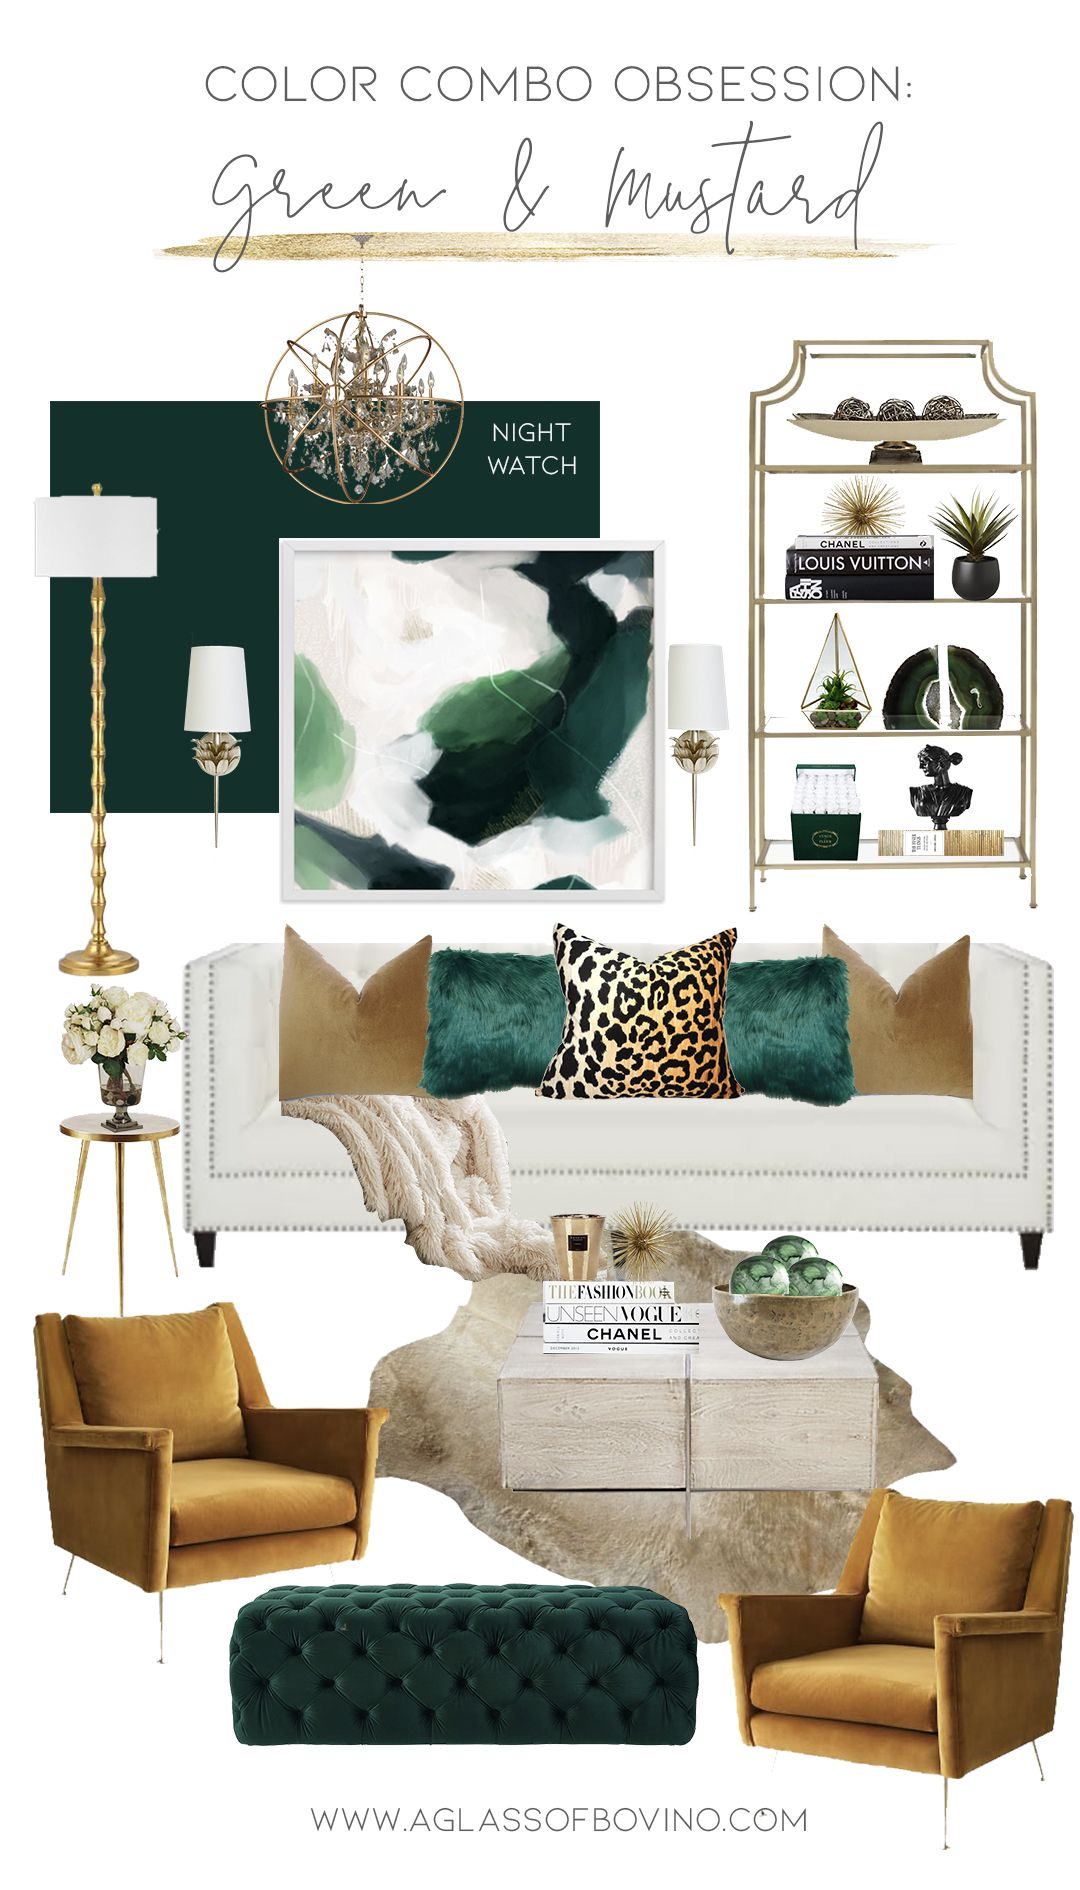 Color Combo Obsession Designing With Green And Mustard Green Living Room Decor Gold Living Room Glam Living Room